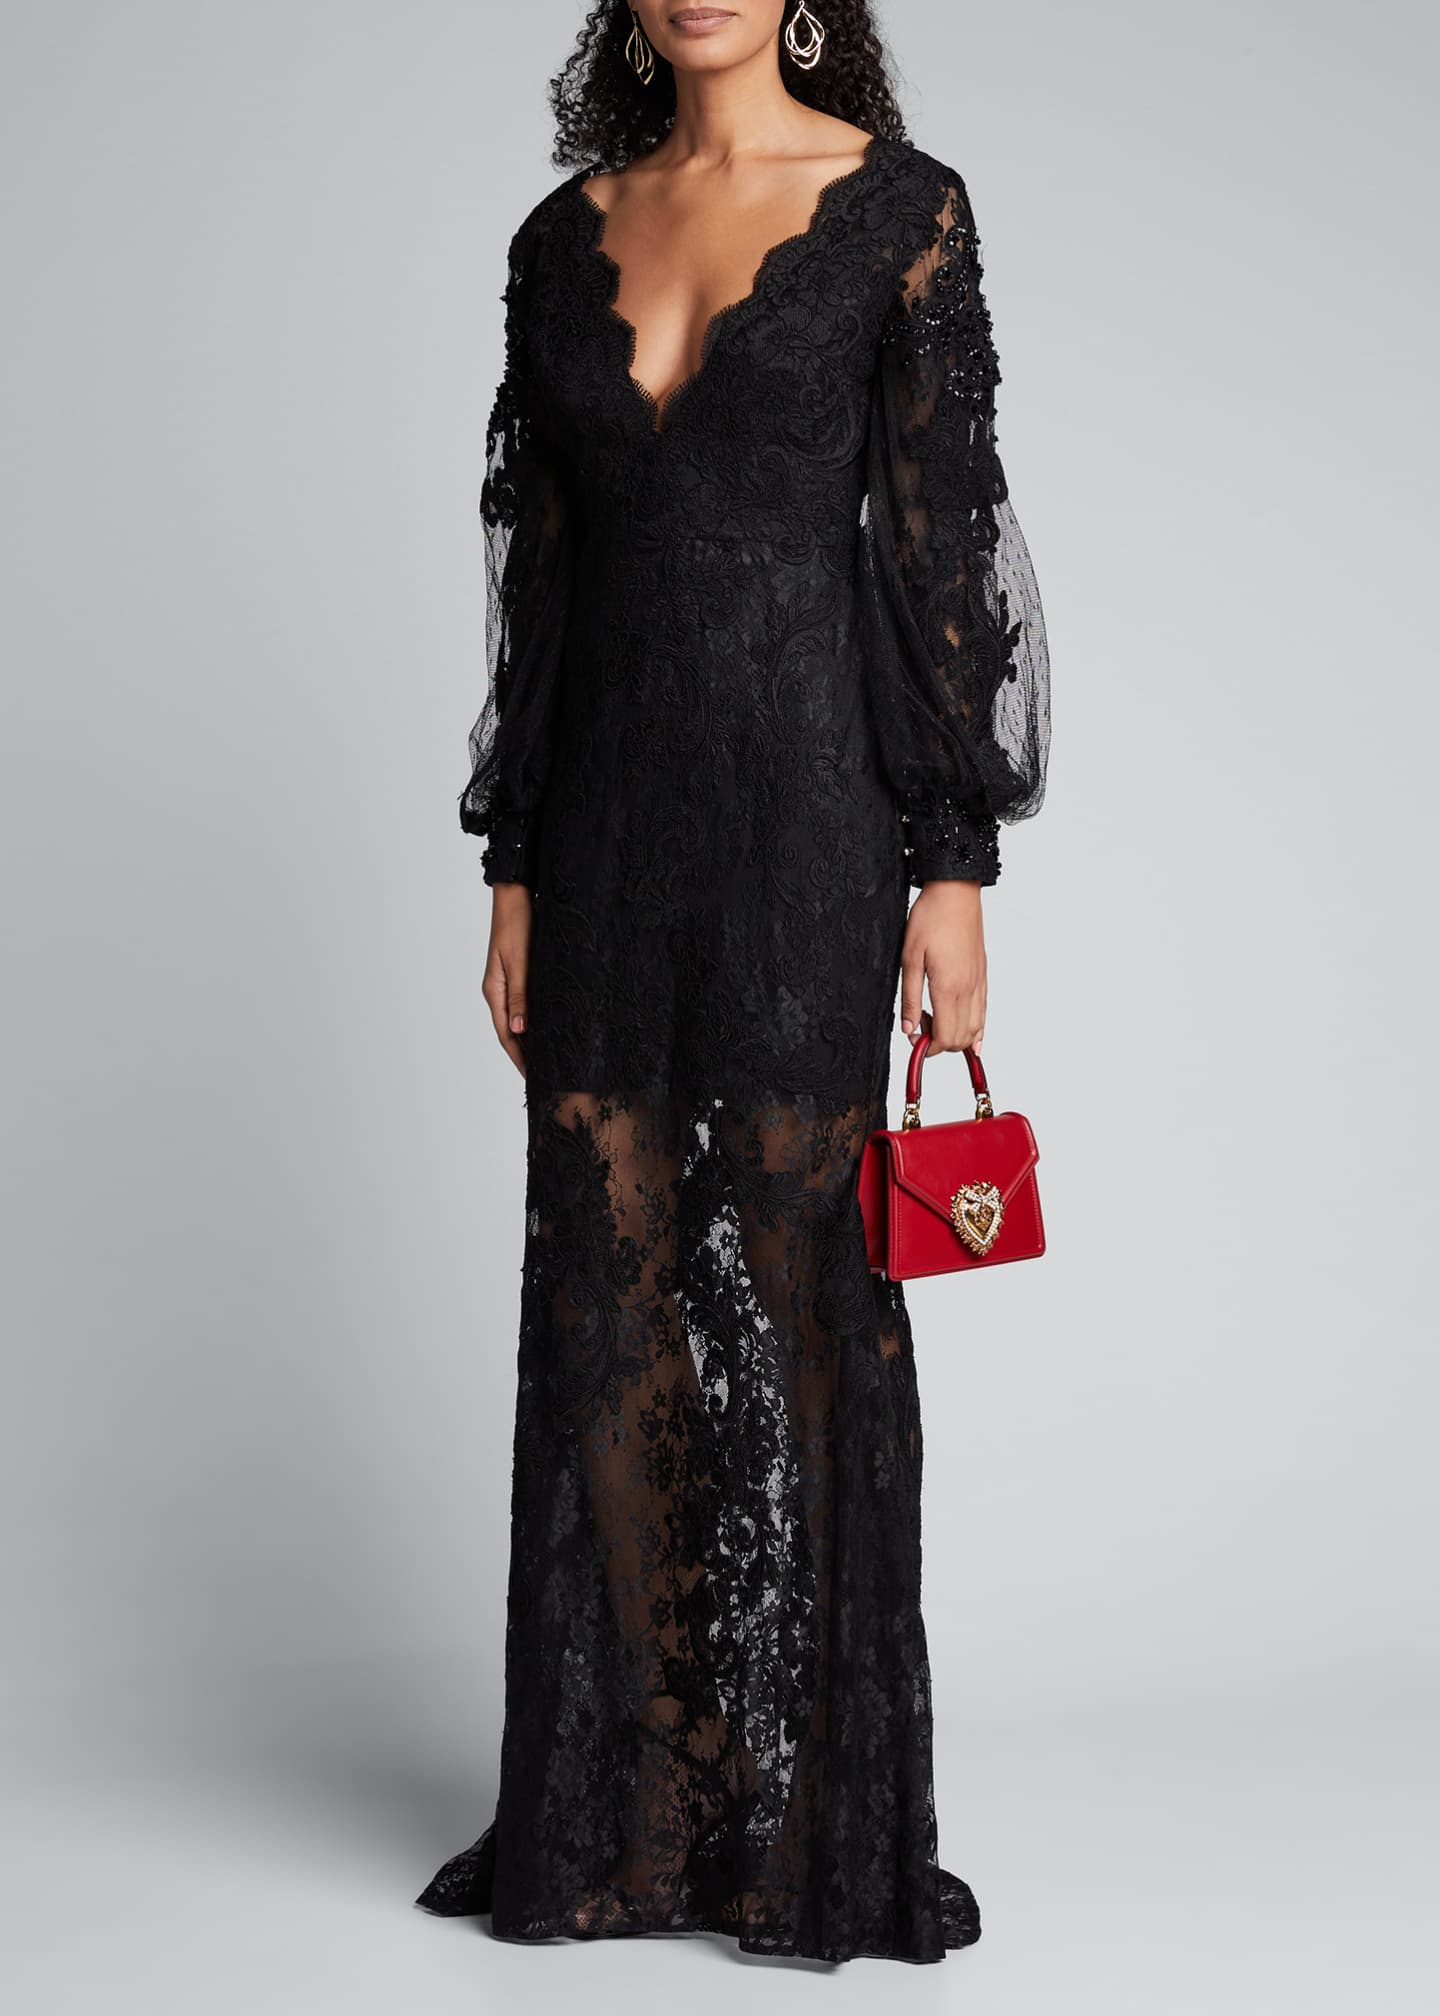 Badgley Mischka Couture Embroidered Lace Balloon-Sleeve Illusion